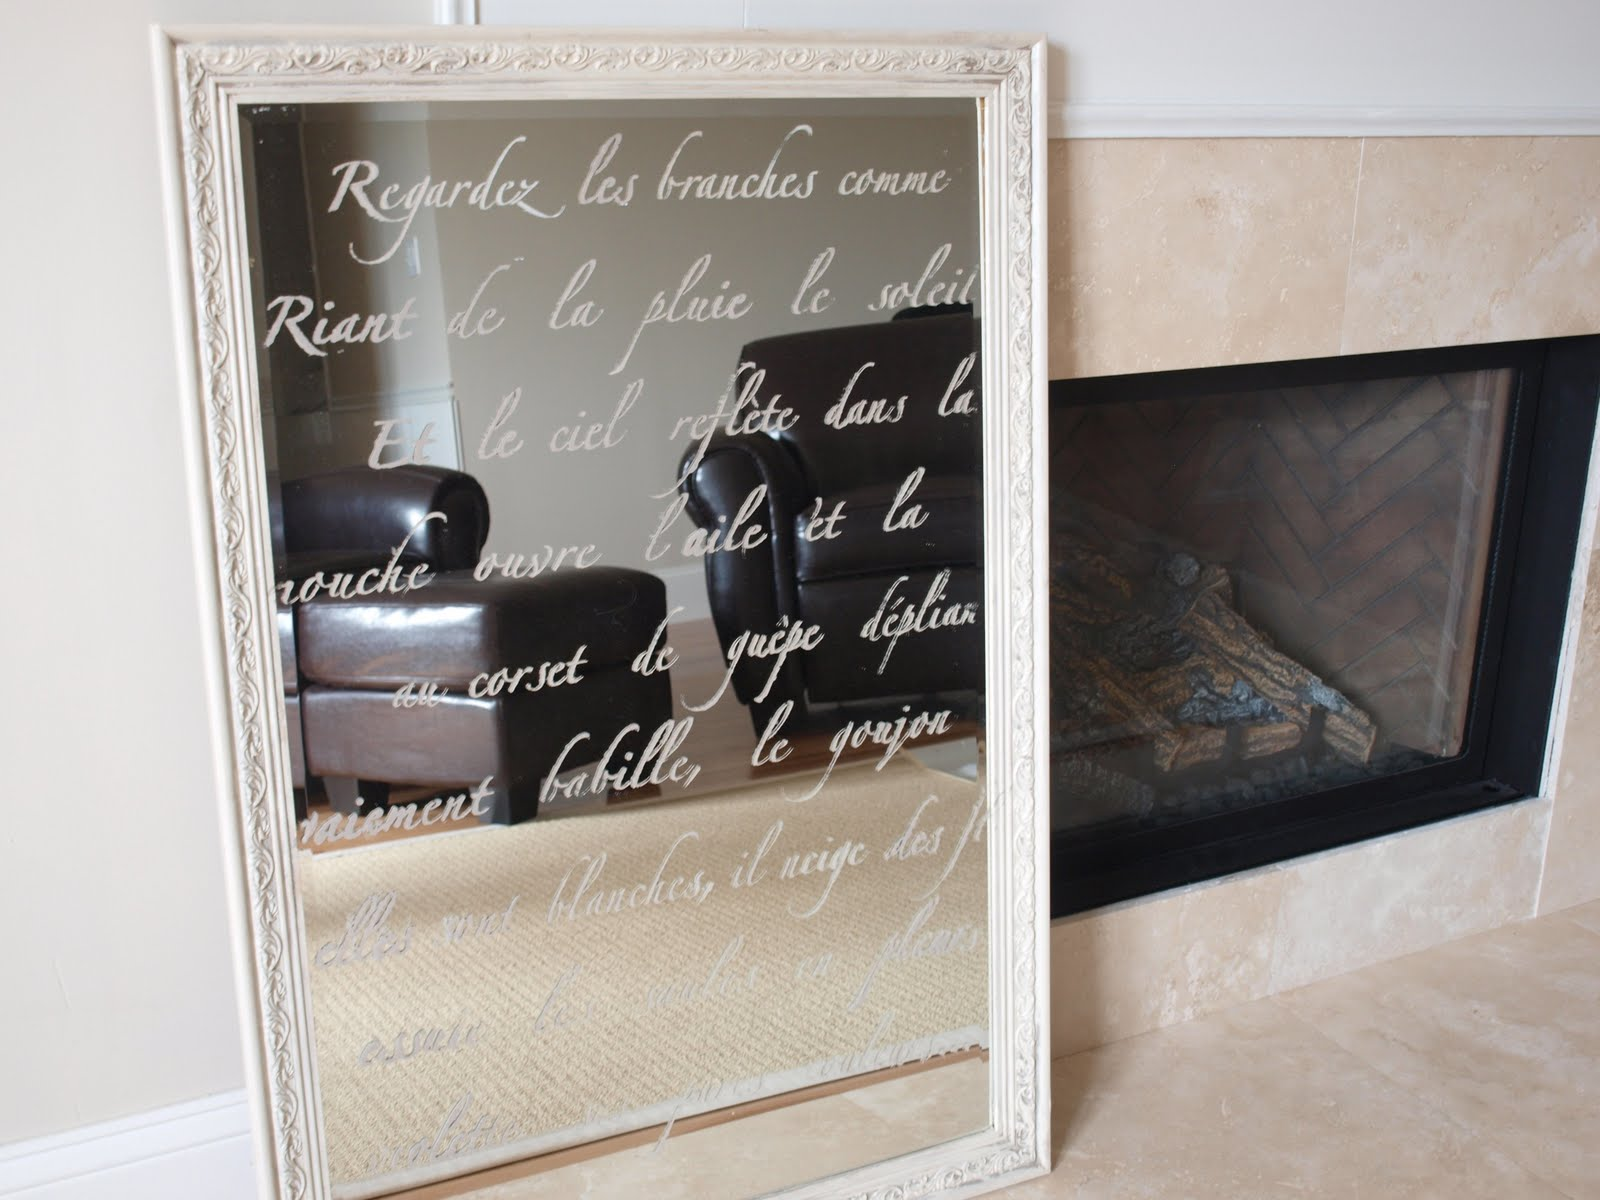 Springtime in Paris stencil was used for this DIY'd stenciled mirror by Hello Lovely Studio.